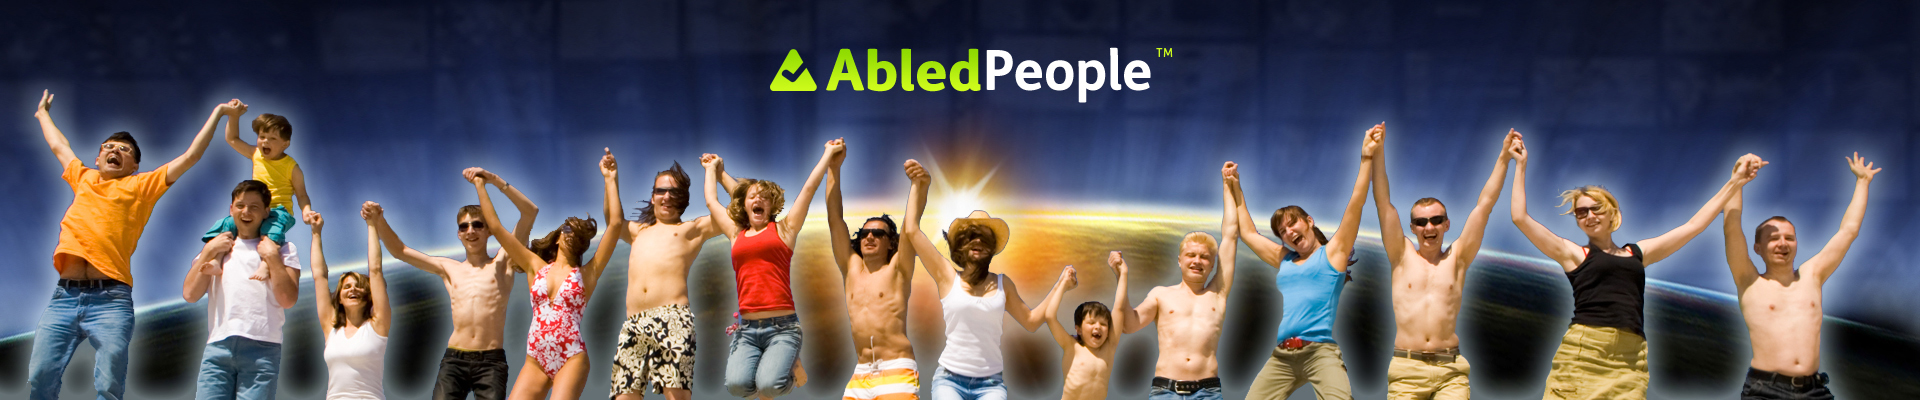 AbledPeople Banner shows a row of people linking hands and jumping in the air at the beach.